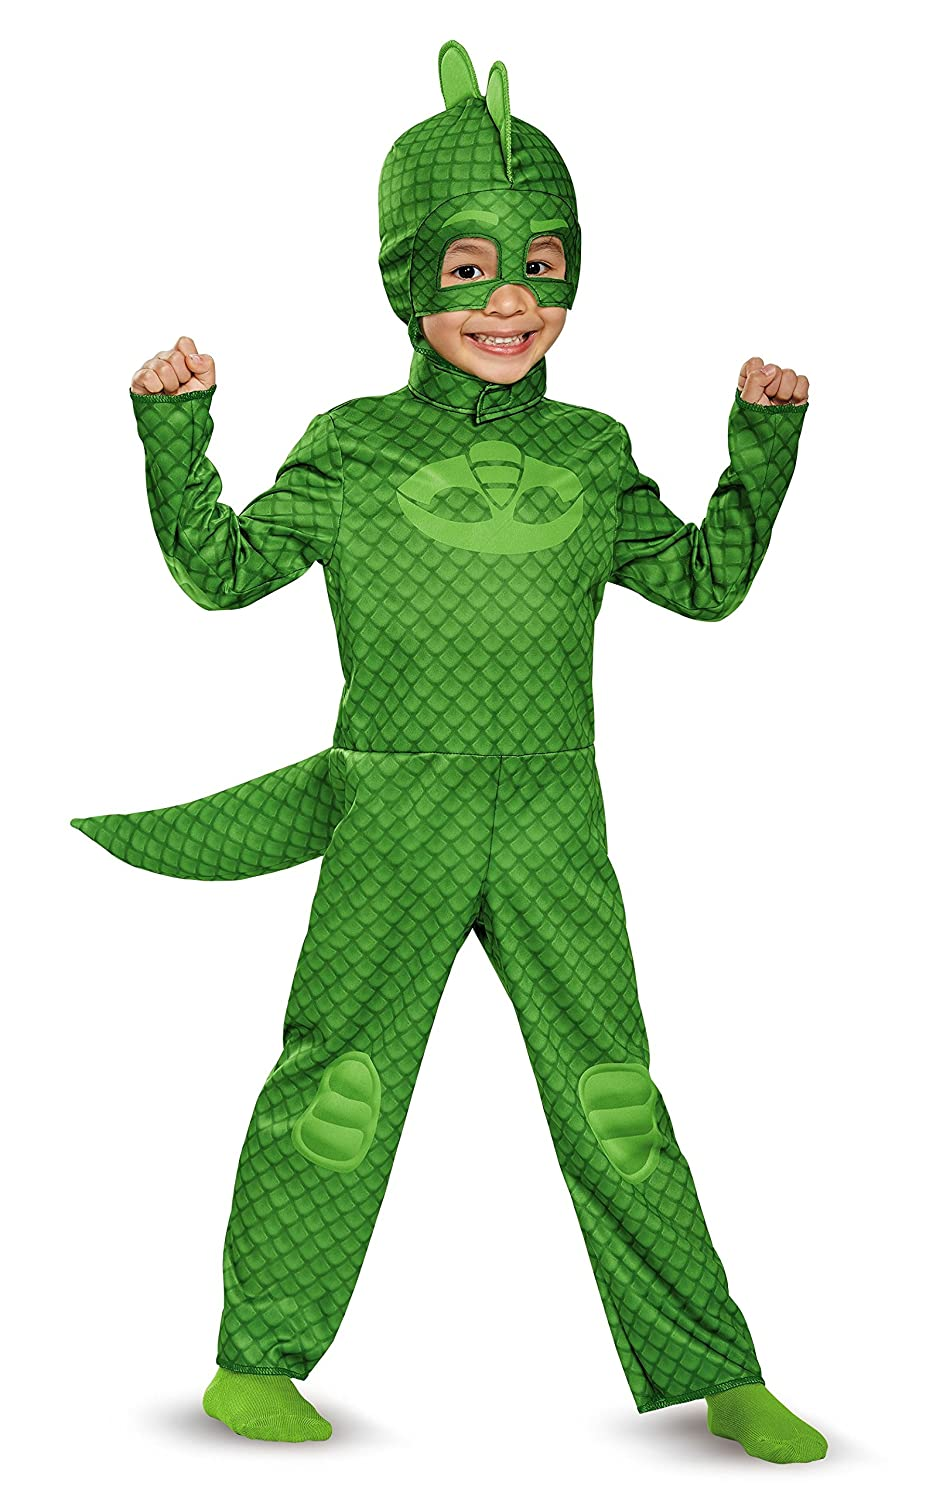 Disguise Gekko Classic Toddler PJ Masks Costume, Small/2T by Disguise: Amazon.es: Juguetes y juegos